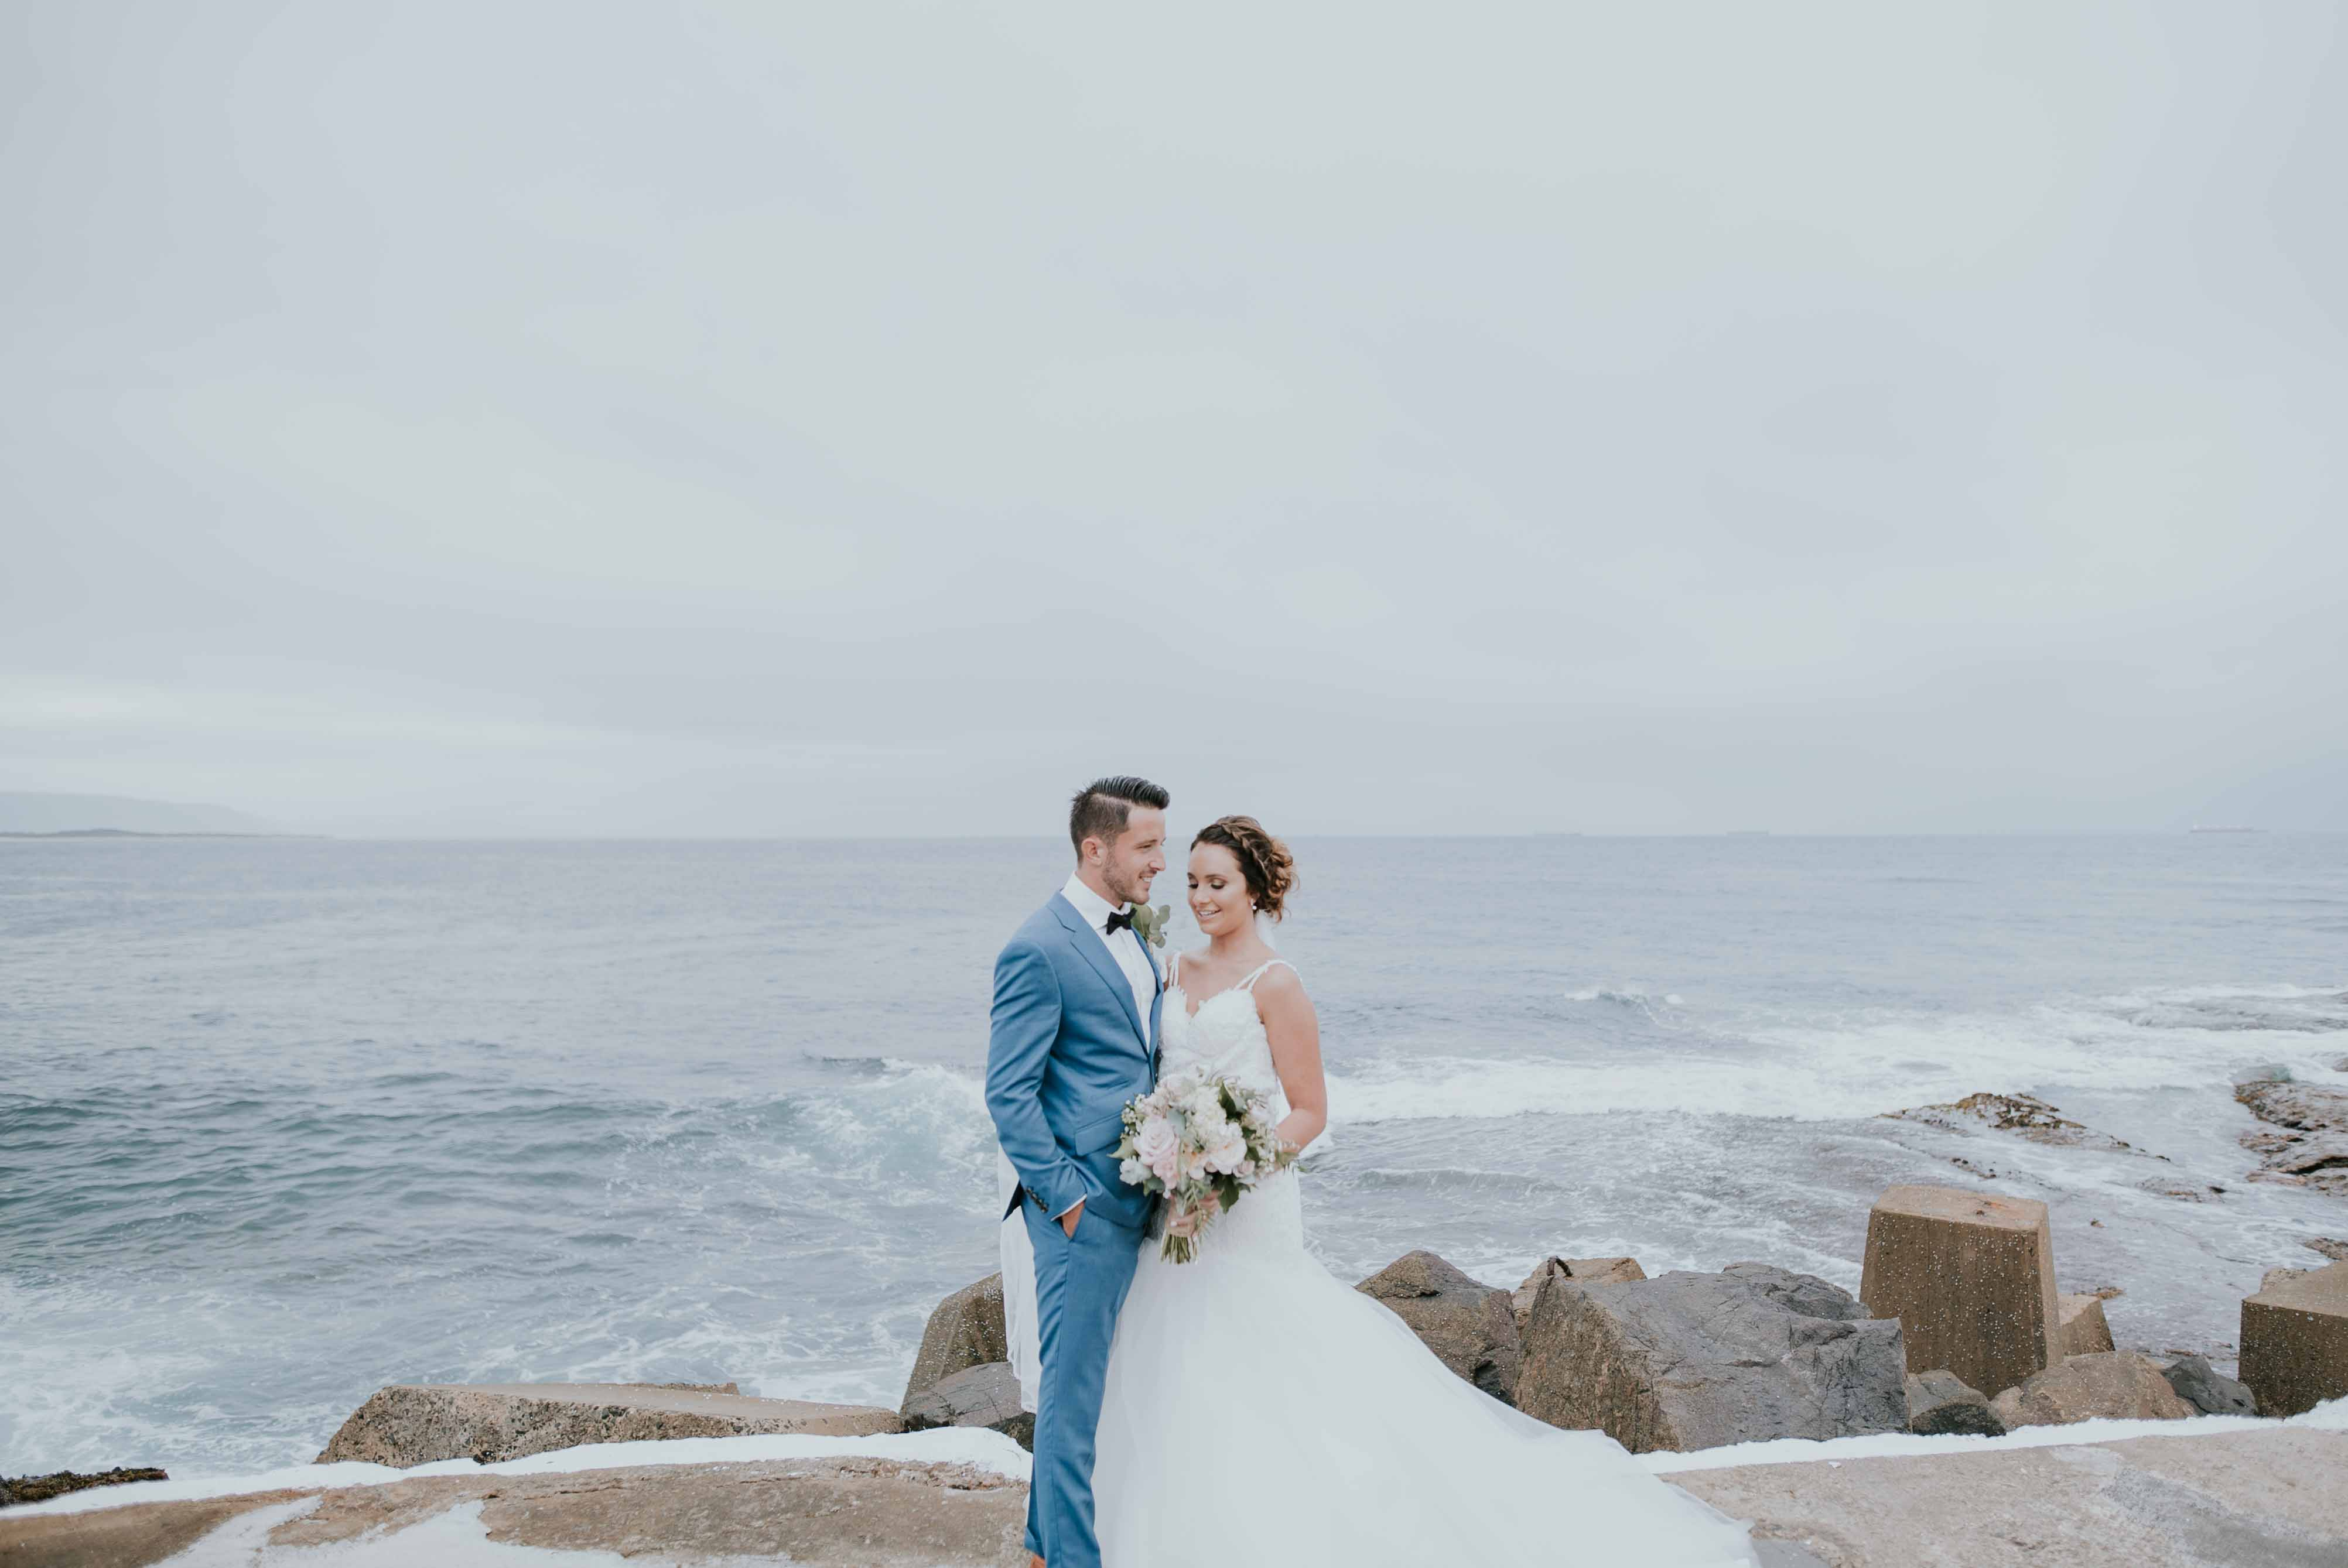 Billy + Amy | 25/02/2017 | Novotel, Wollongong, NSW